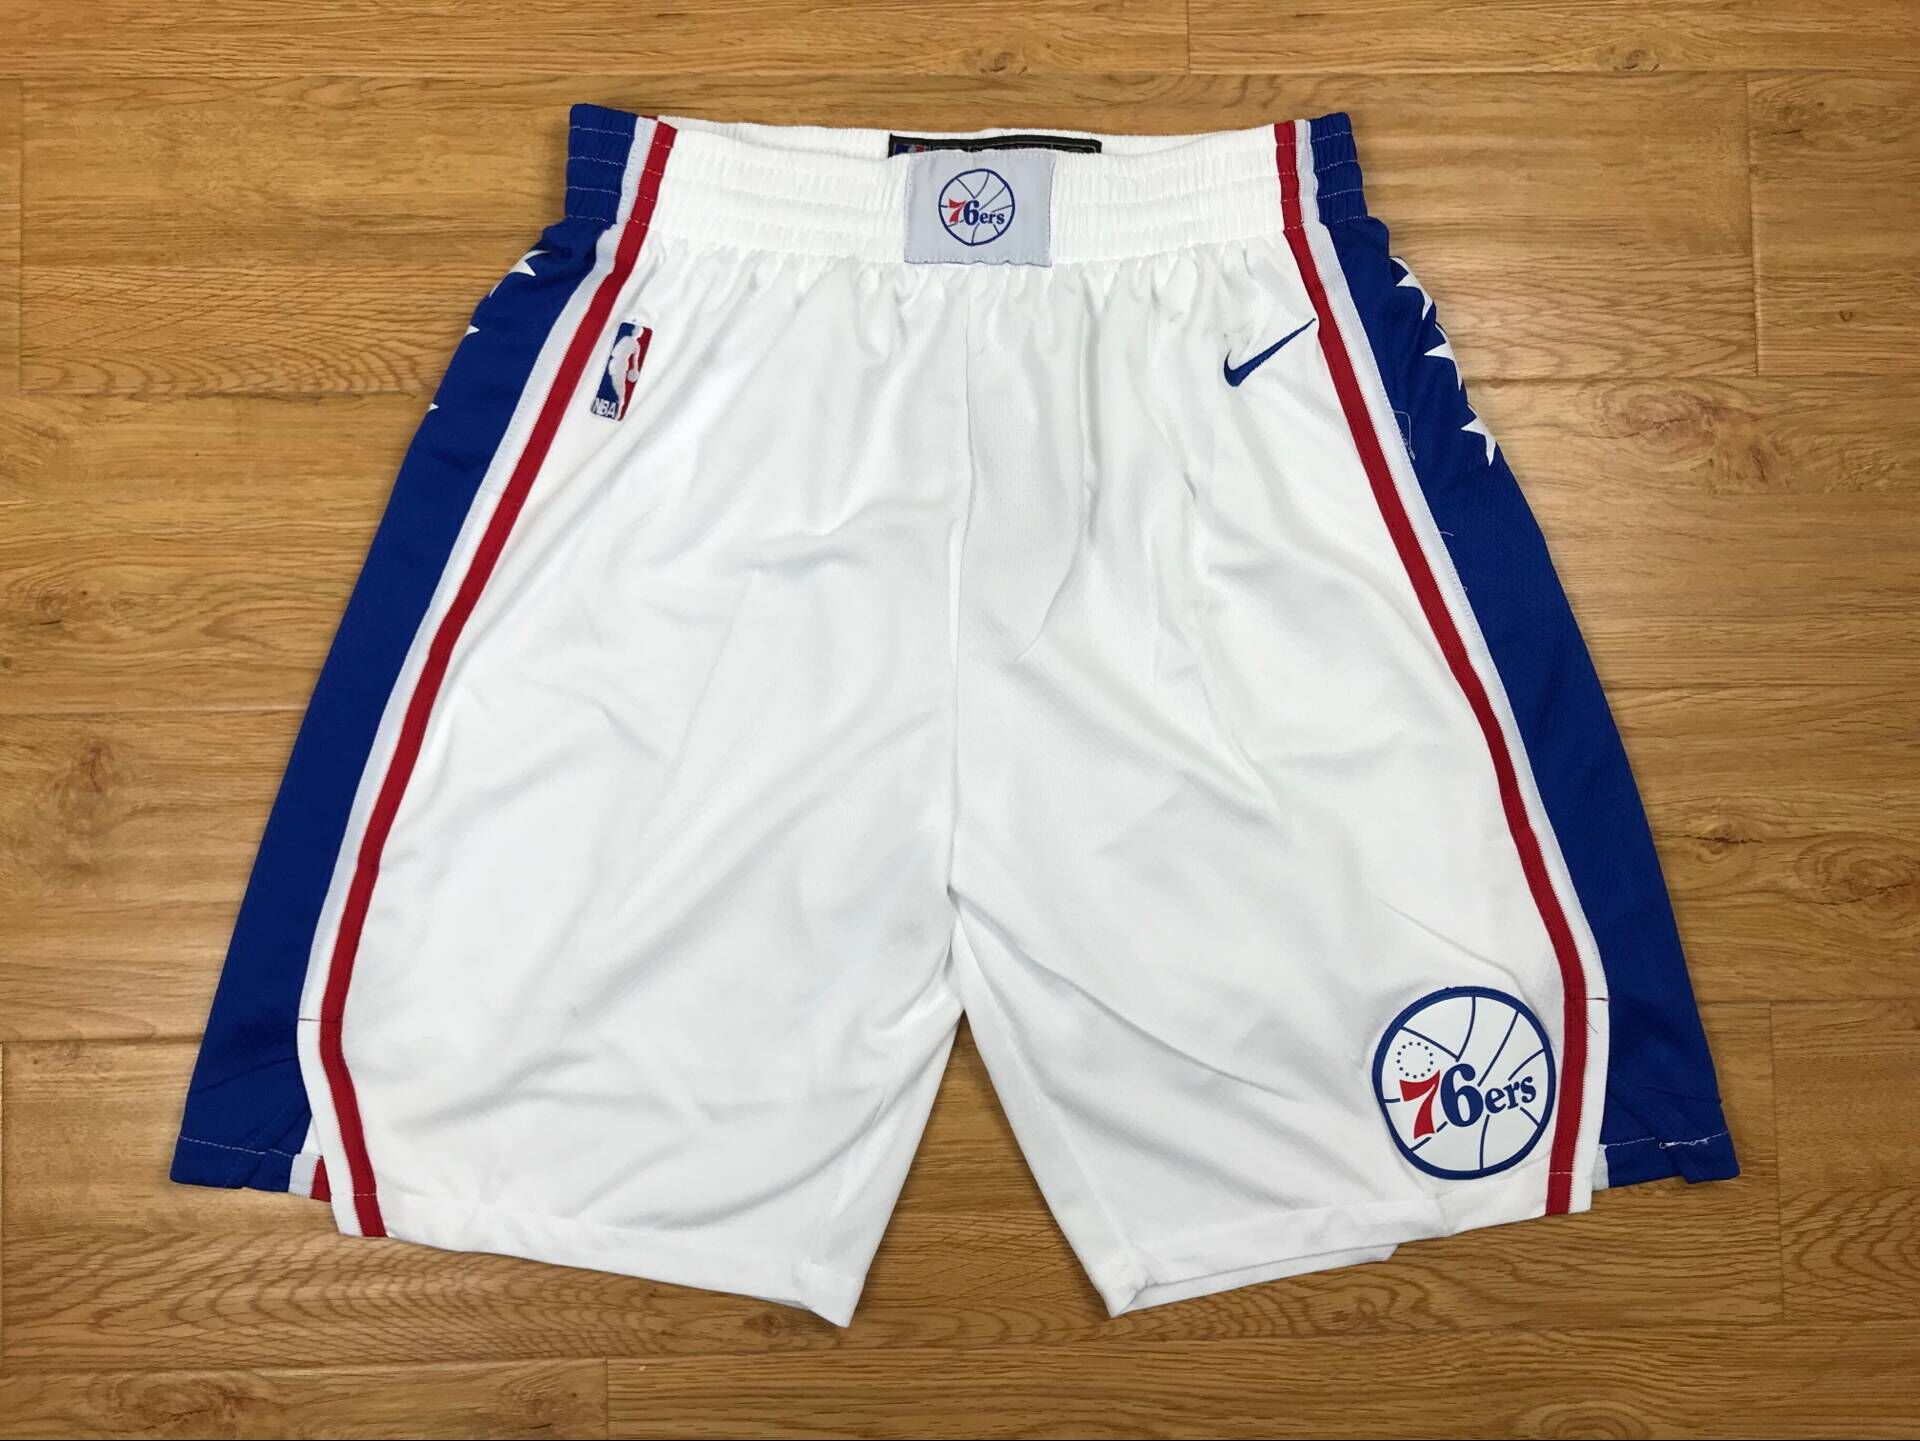 76ers White Nike Authentic Shorts